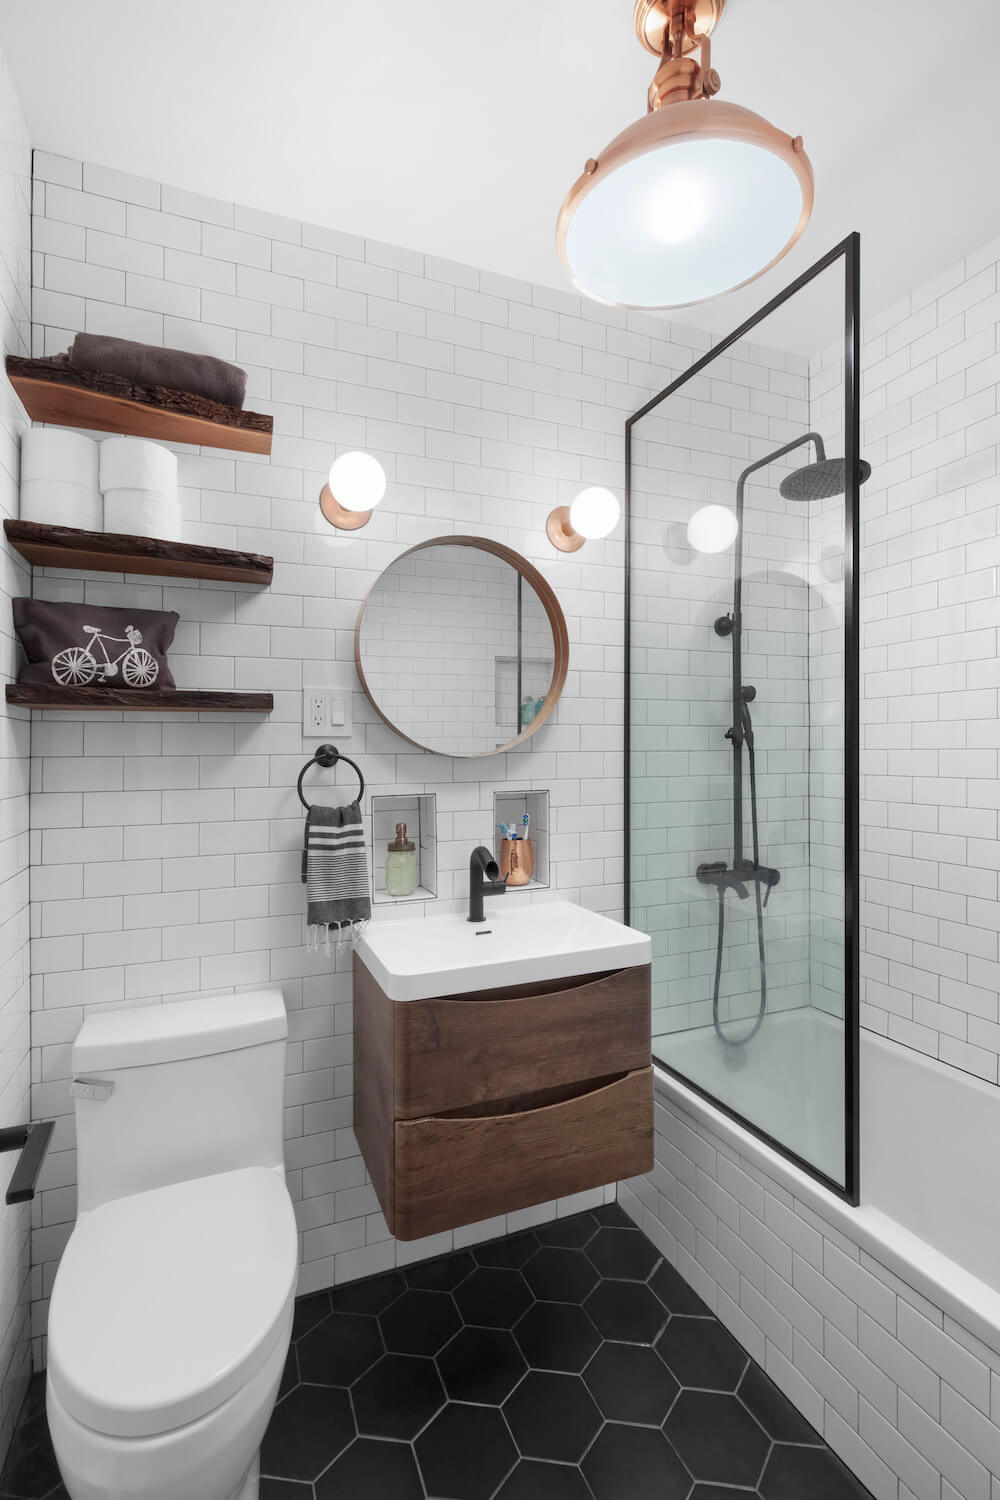 Top 5 Styles Of Bathroom Floor Tiles